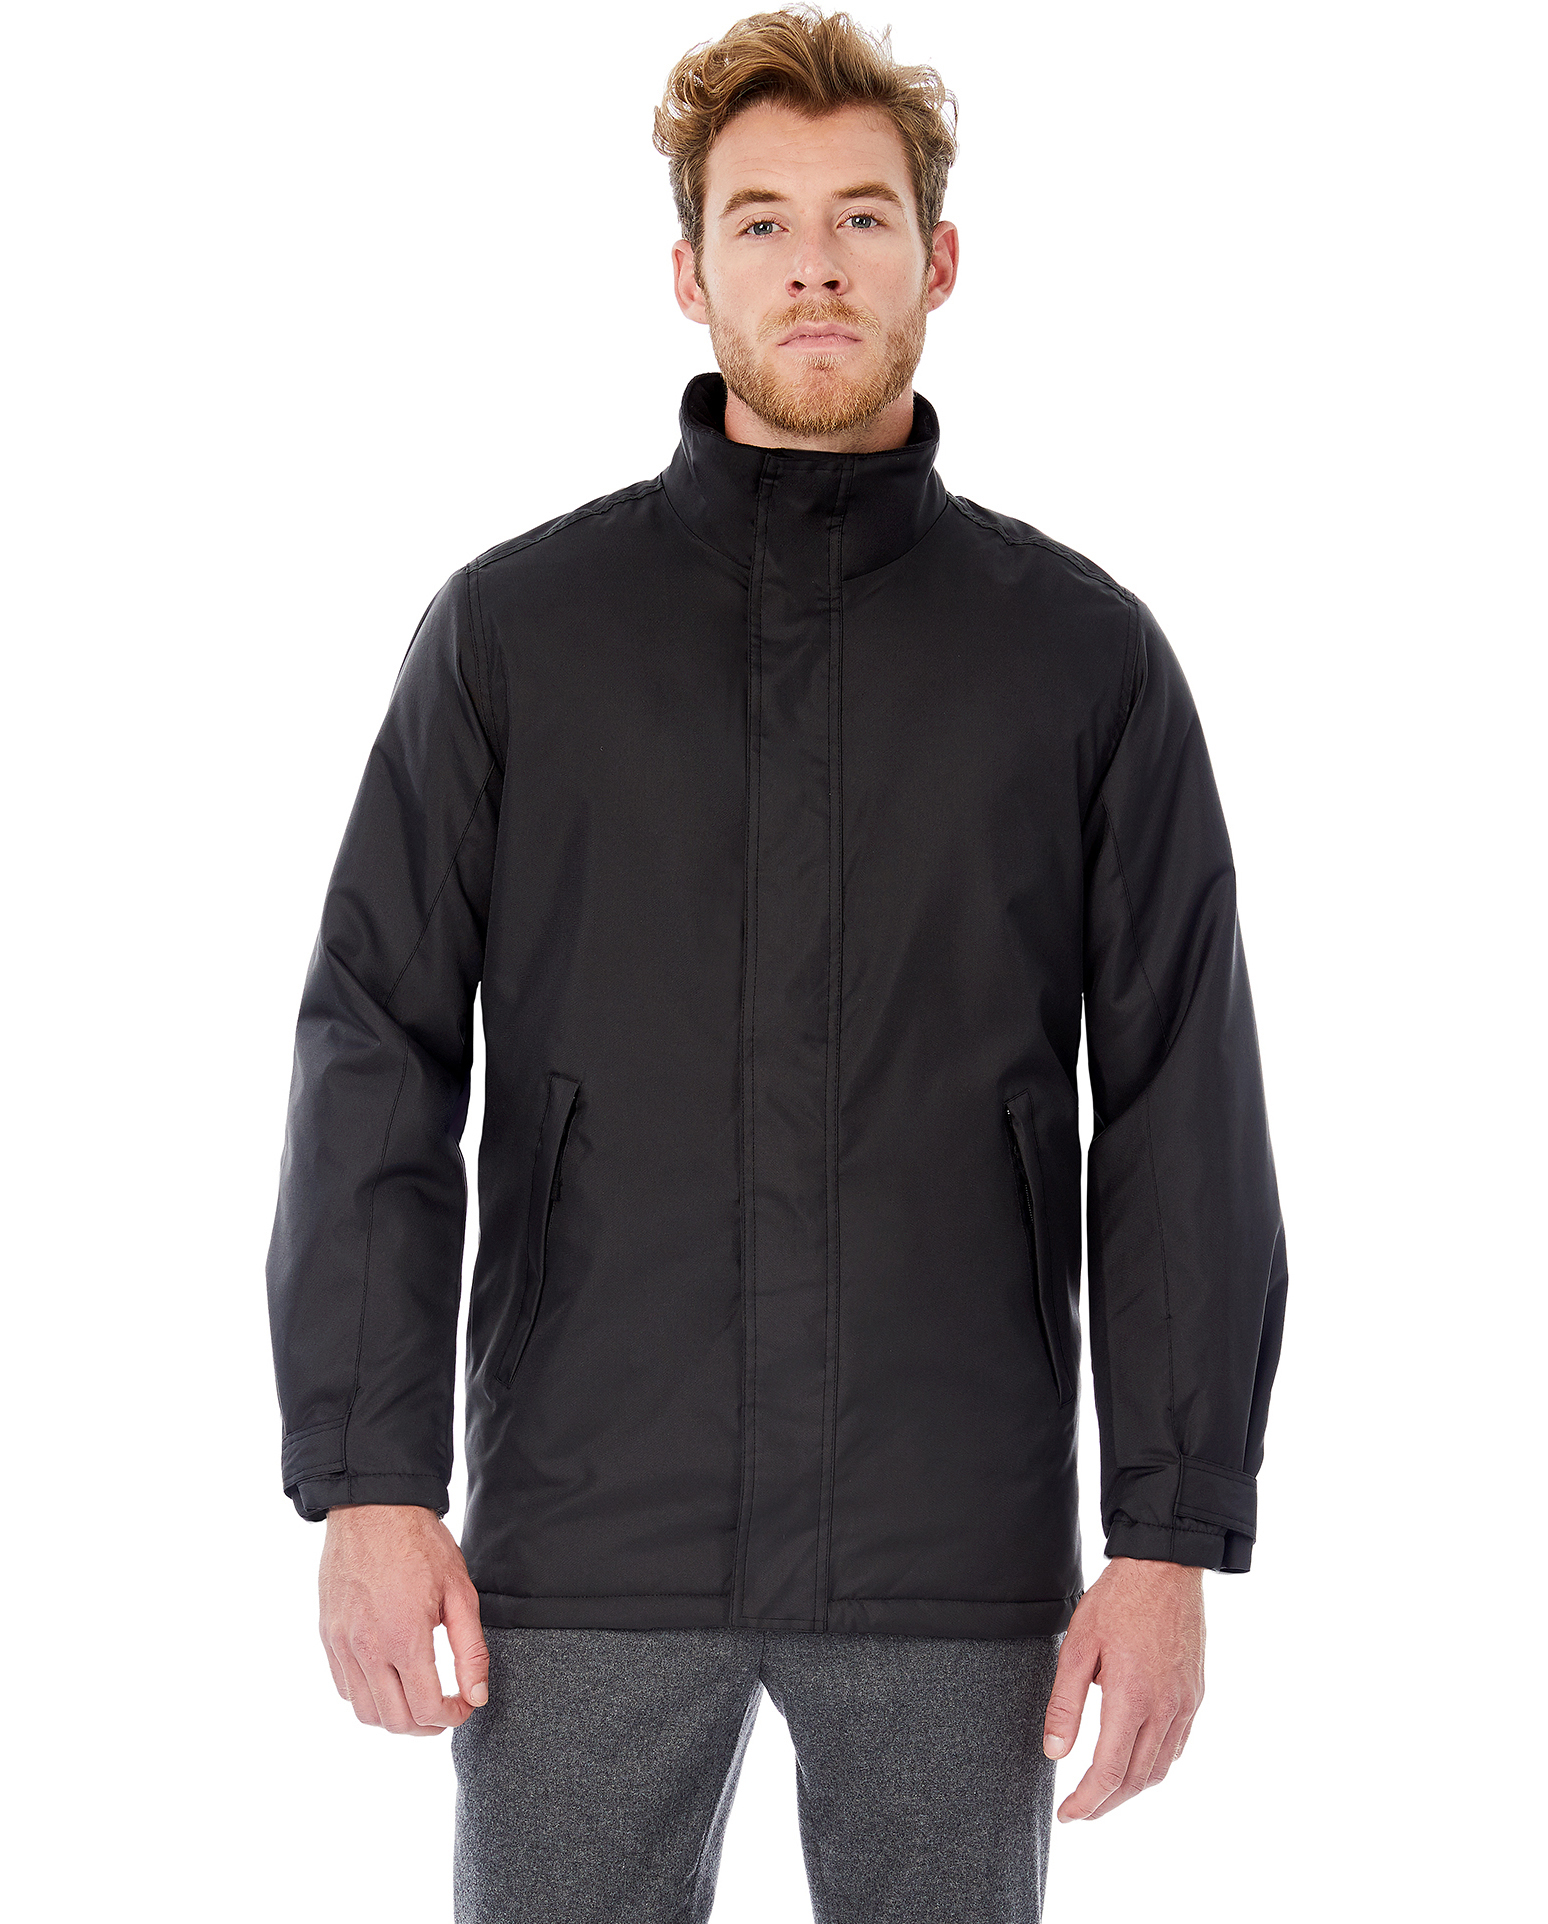 B&C: Men`s Heavy Weight Jacket Real+ Men JM970